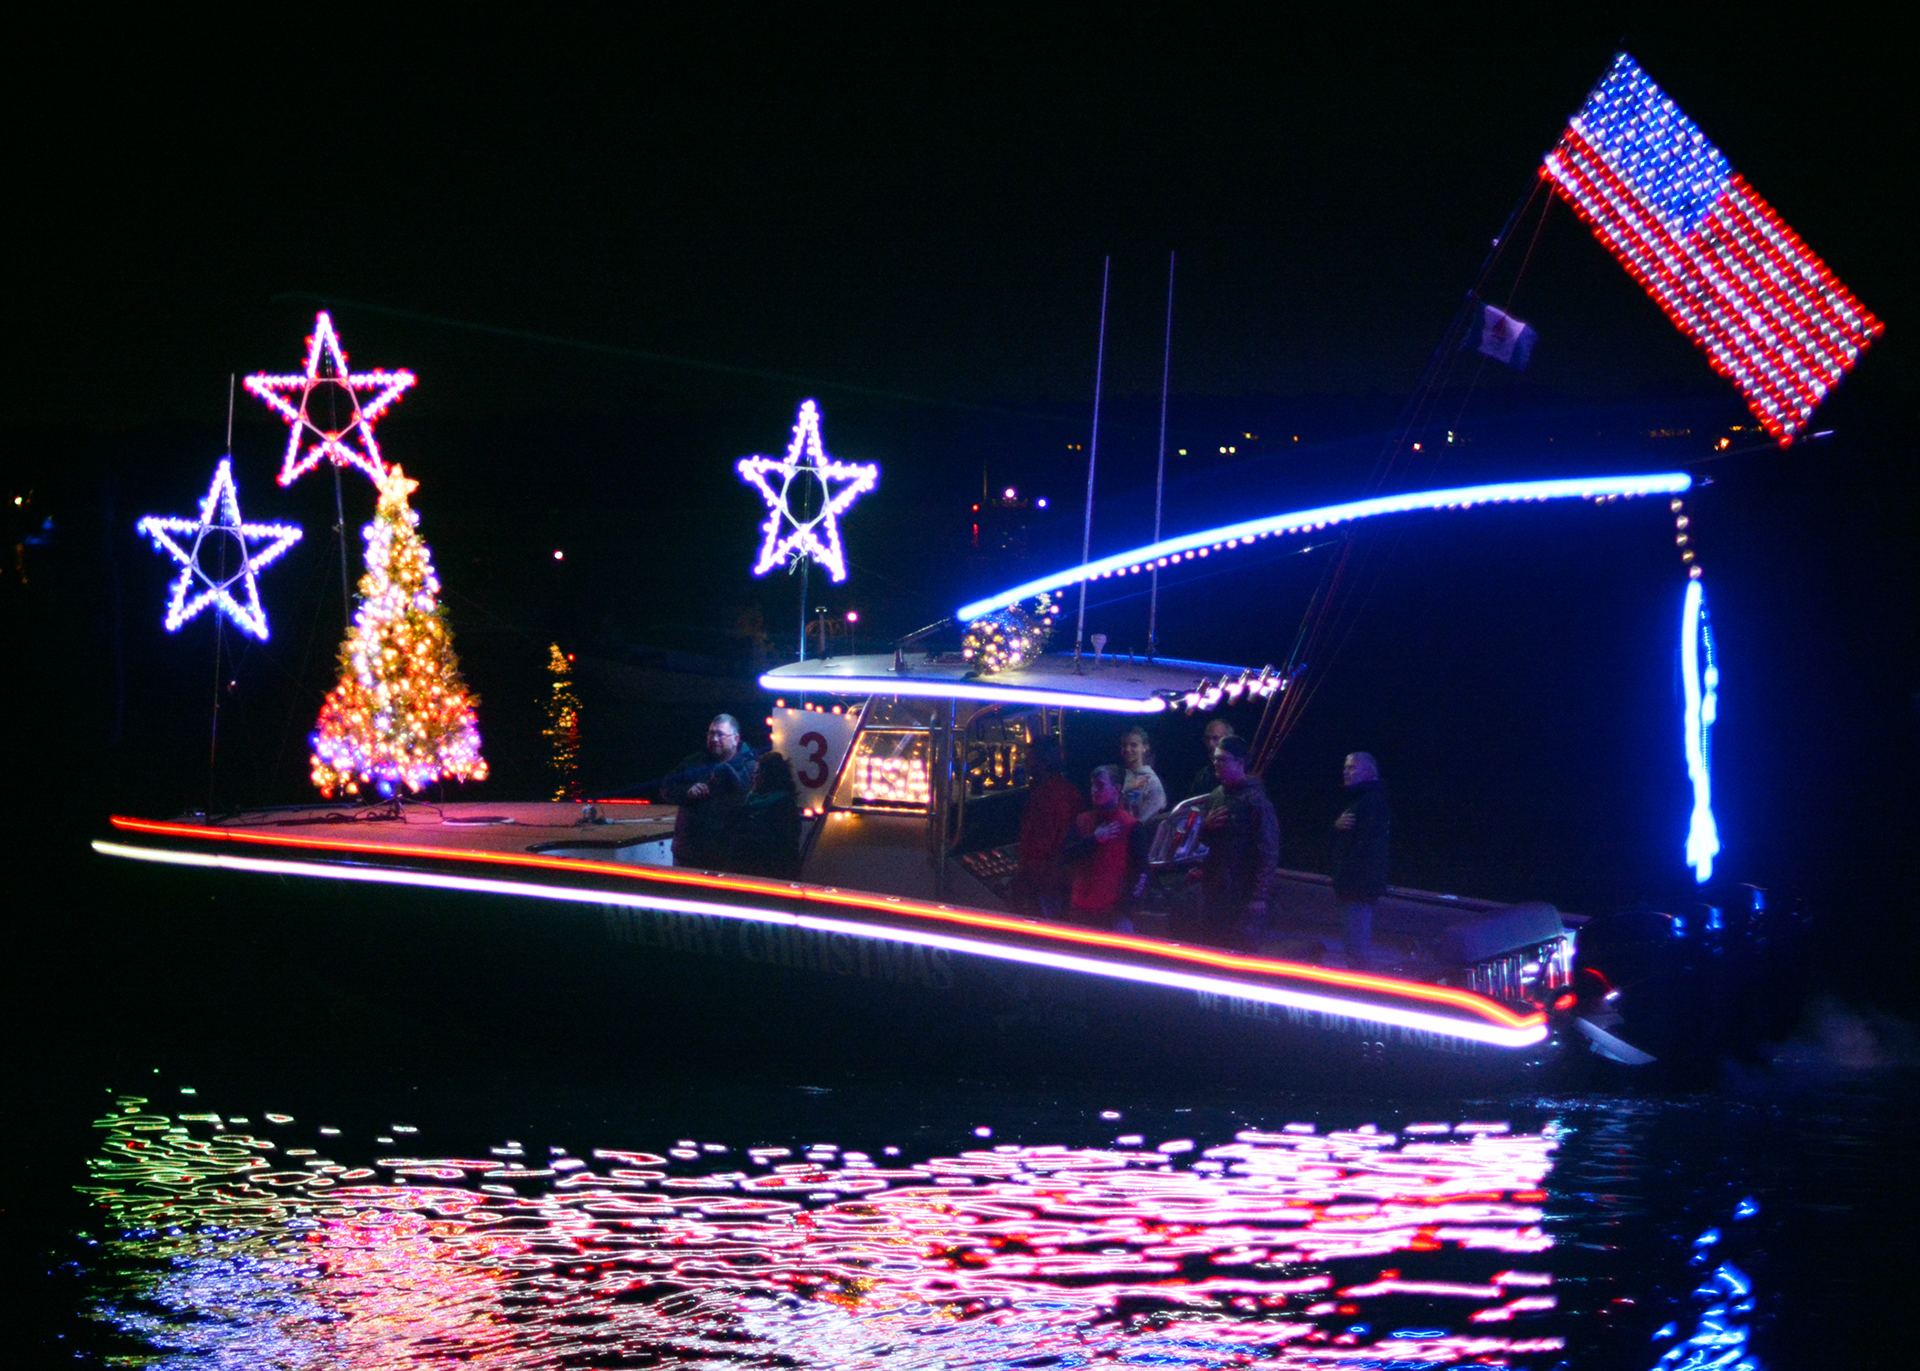 "<div class=""meta image-caption""><div class=""origin-logo origin-image none""><span>none</span></div><span class=""caption-text"">2017 NC Holiday Flotilla Best 31 ft and Over Award winner (Credit: Beth W. Hedgepeth)</span></div>"